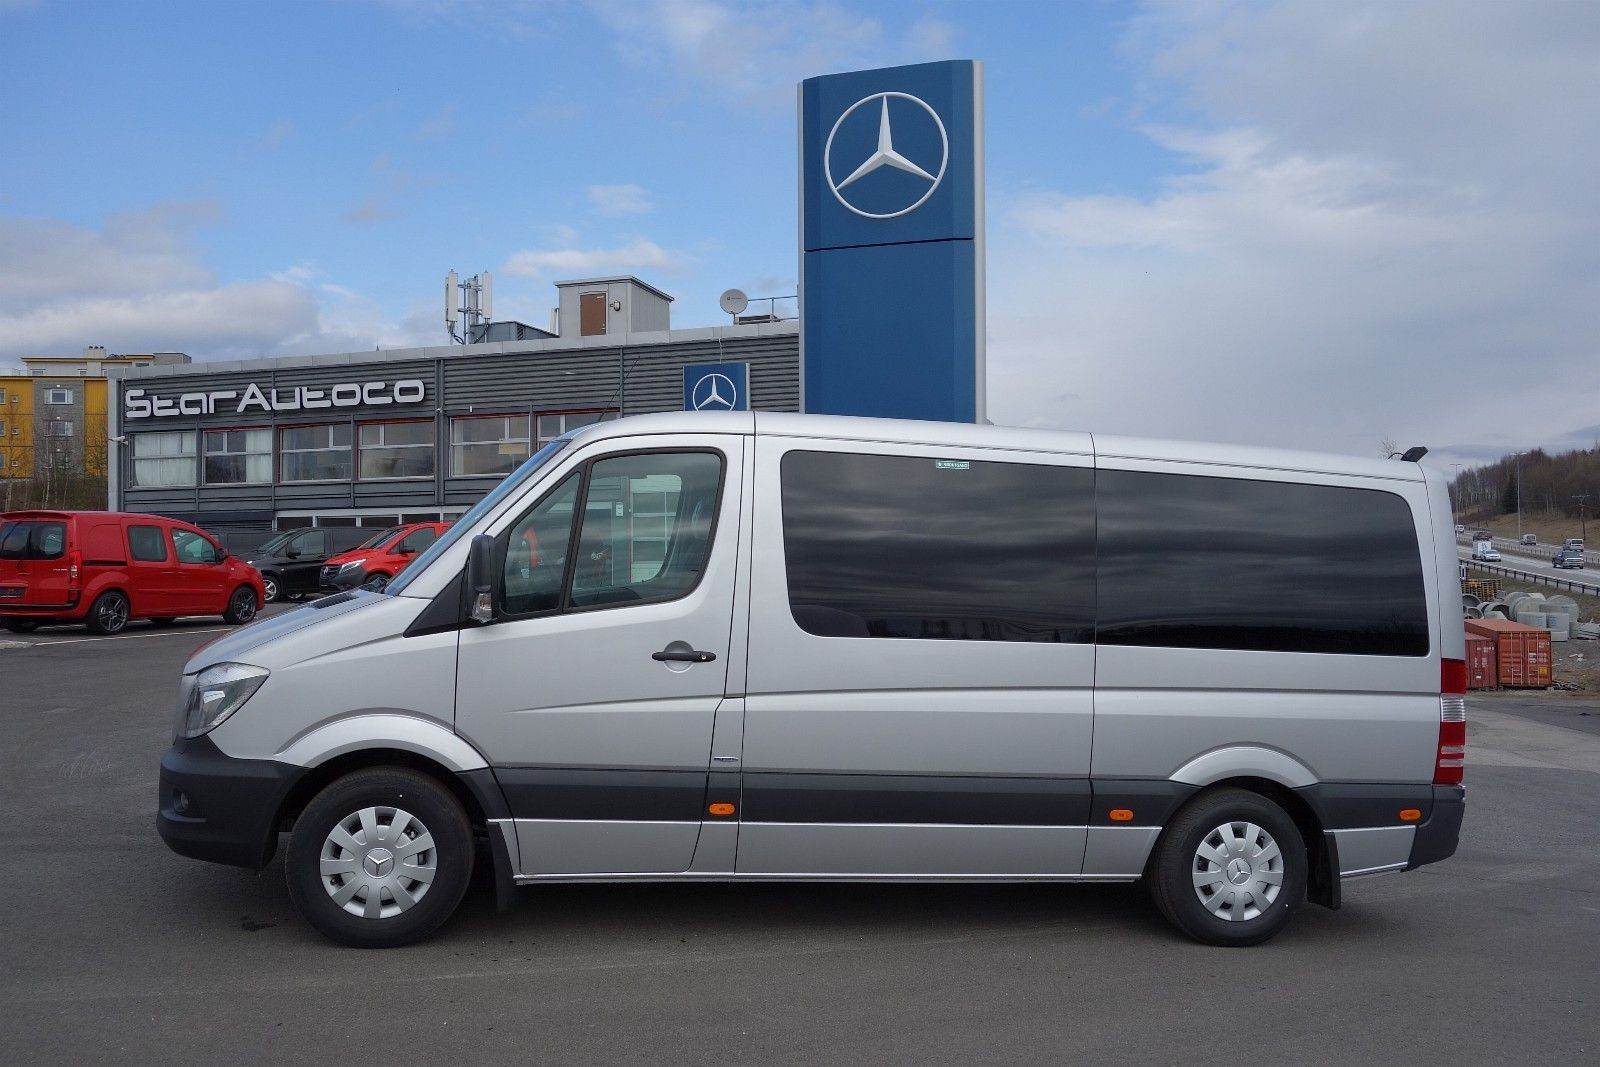 (1) FINN – Mercedes-Benz Sprinter